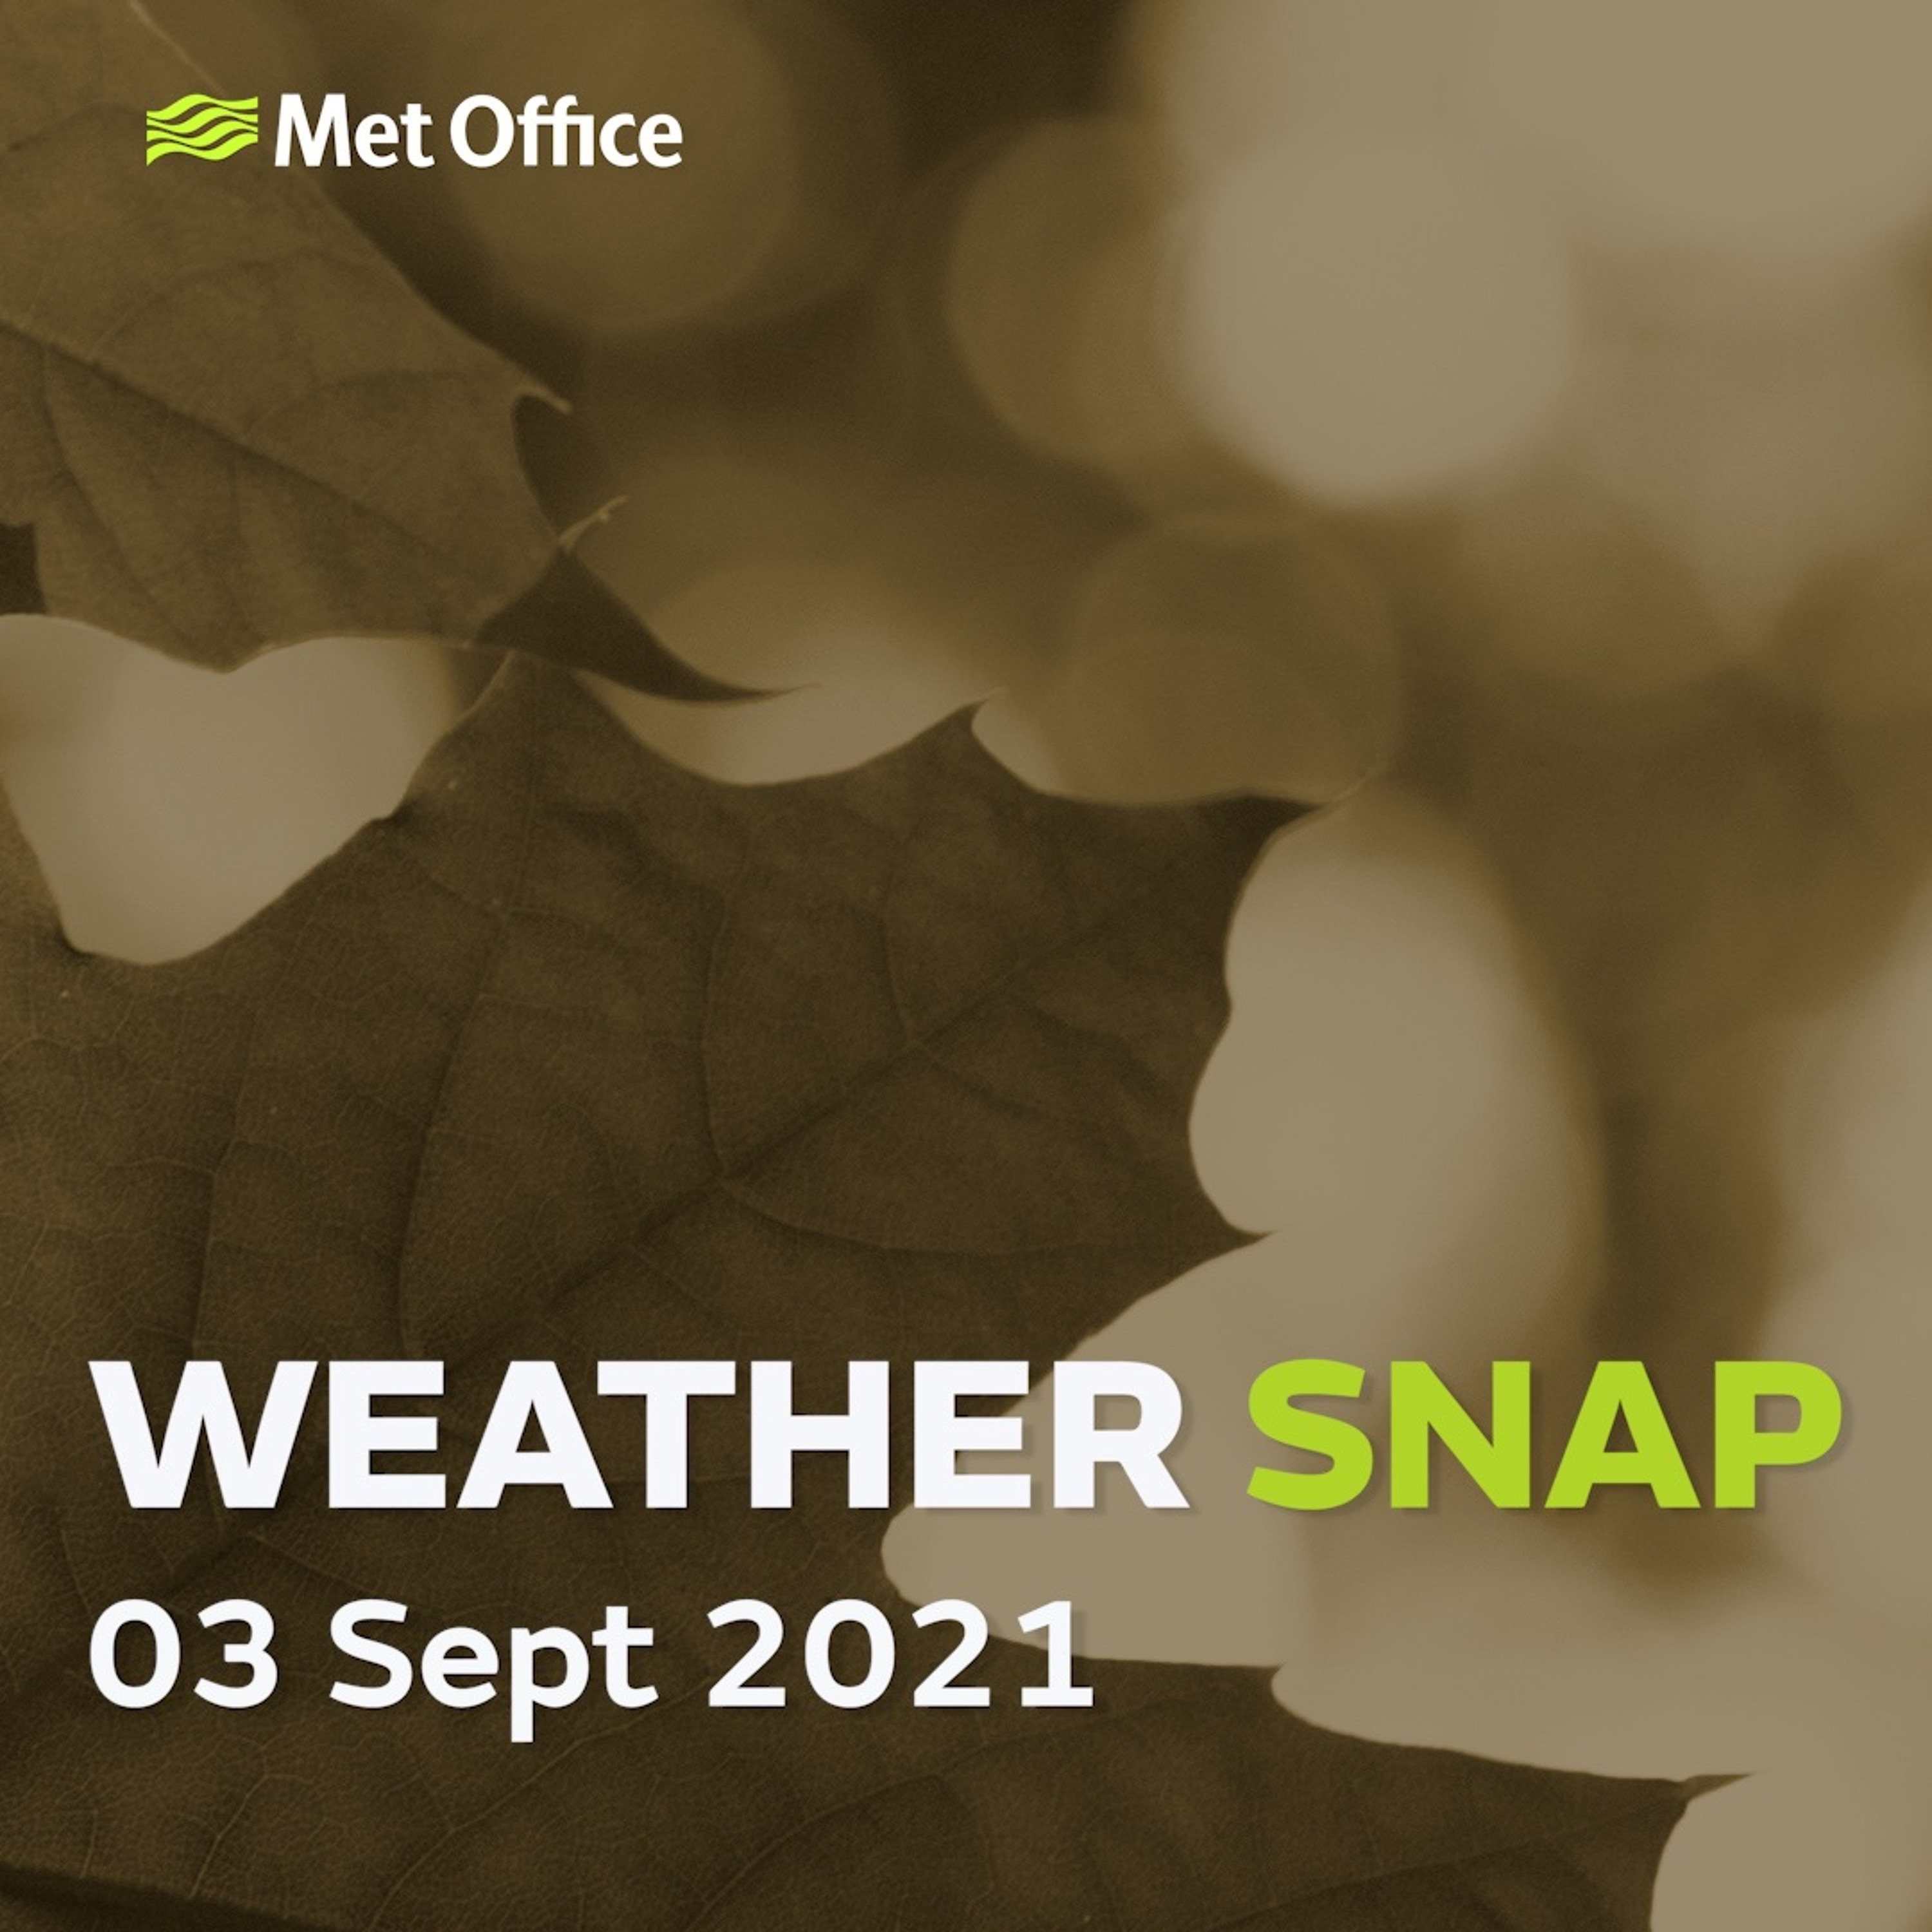 Weather Snap 03 Sept 2021